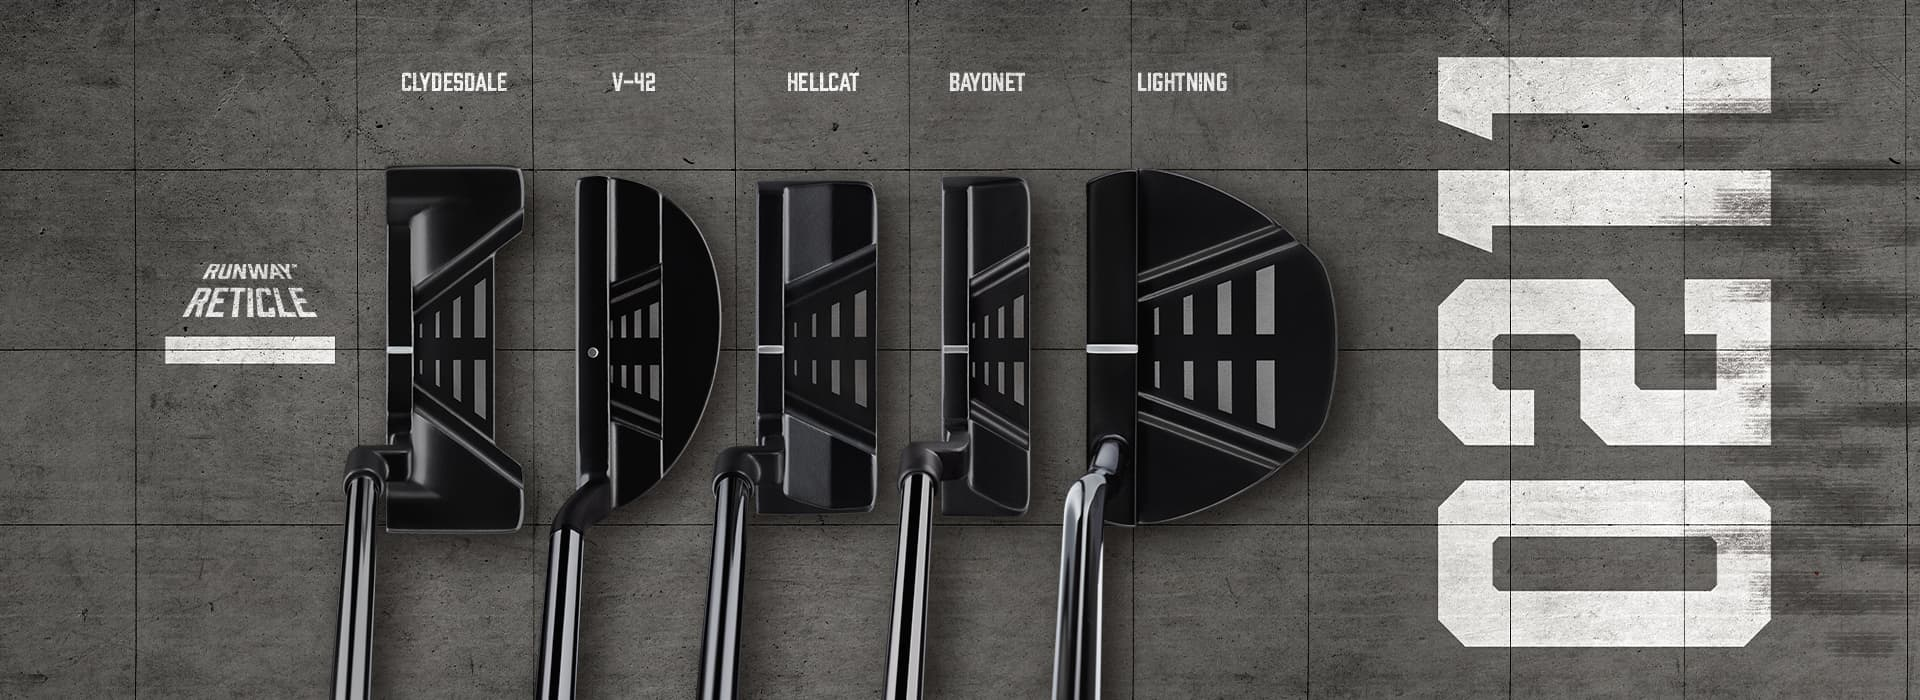 The POV view of 5 0211 PXG putters on an airport runway.